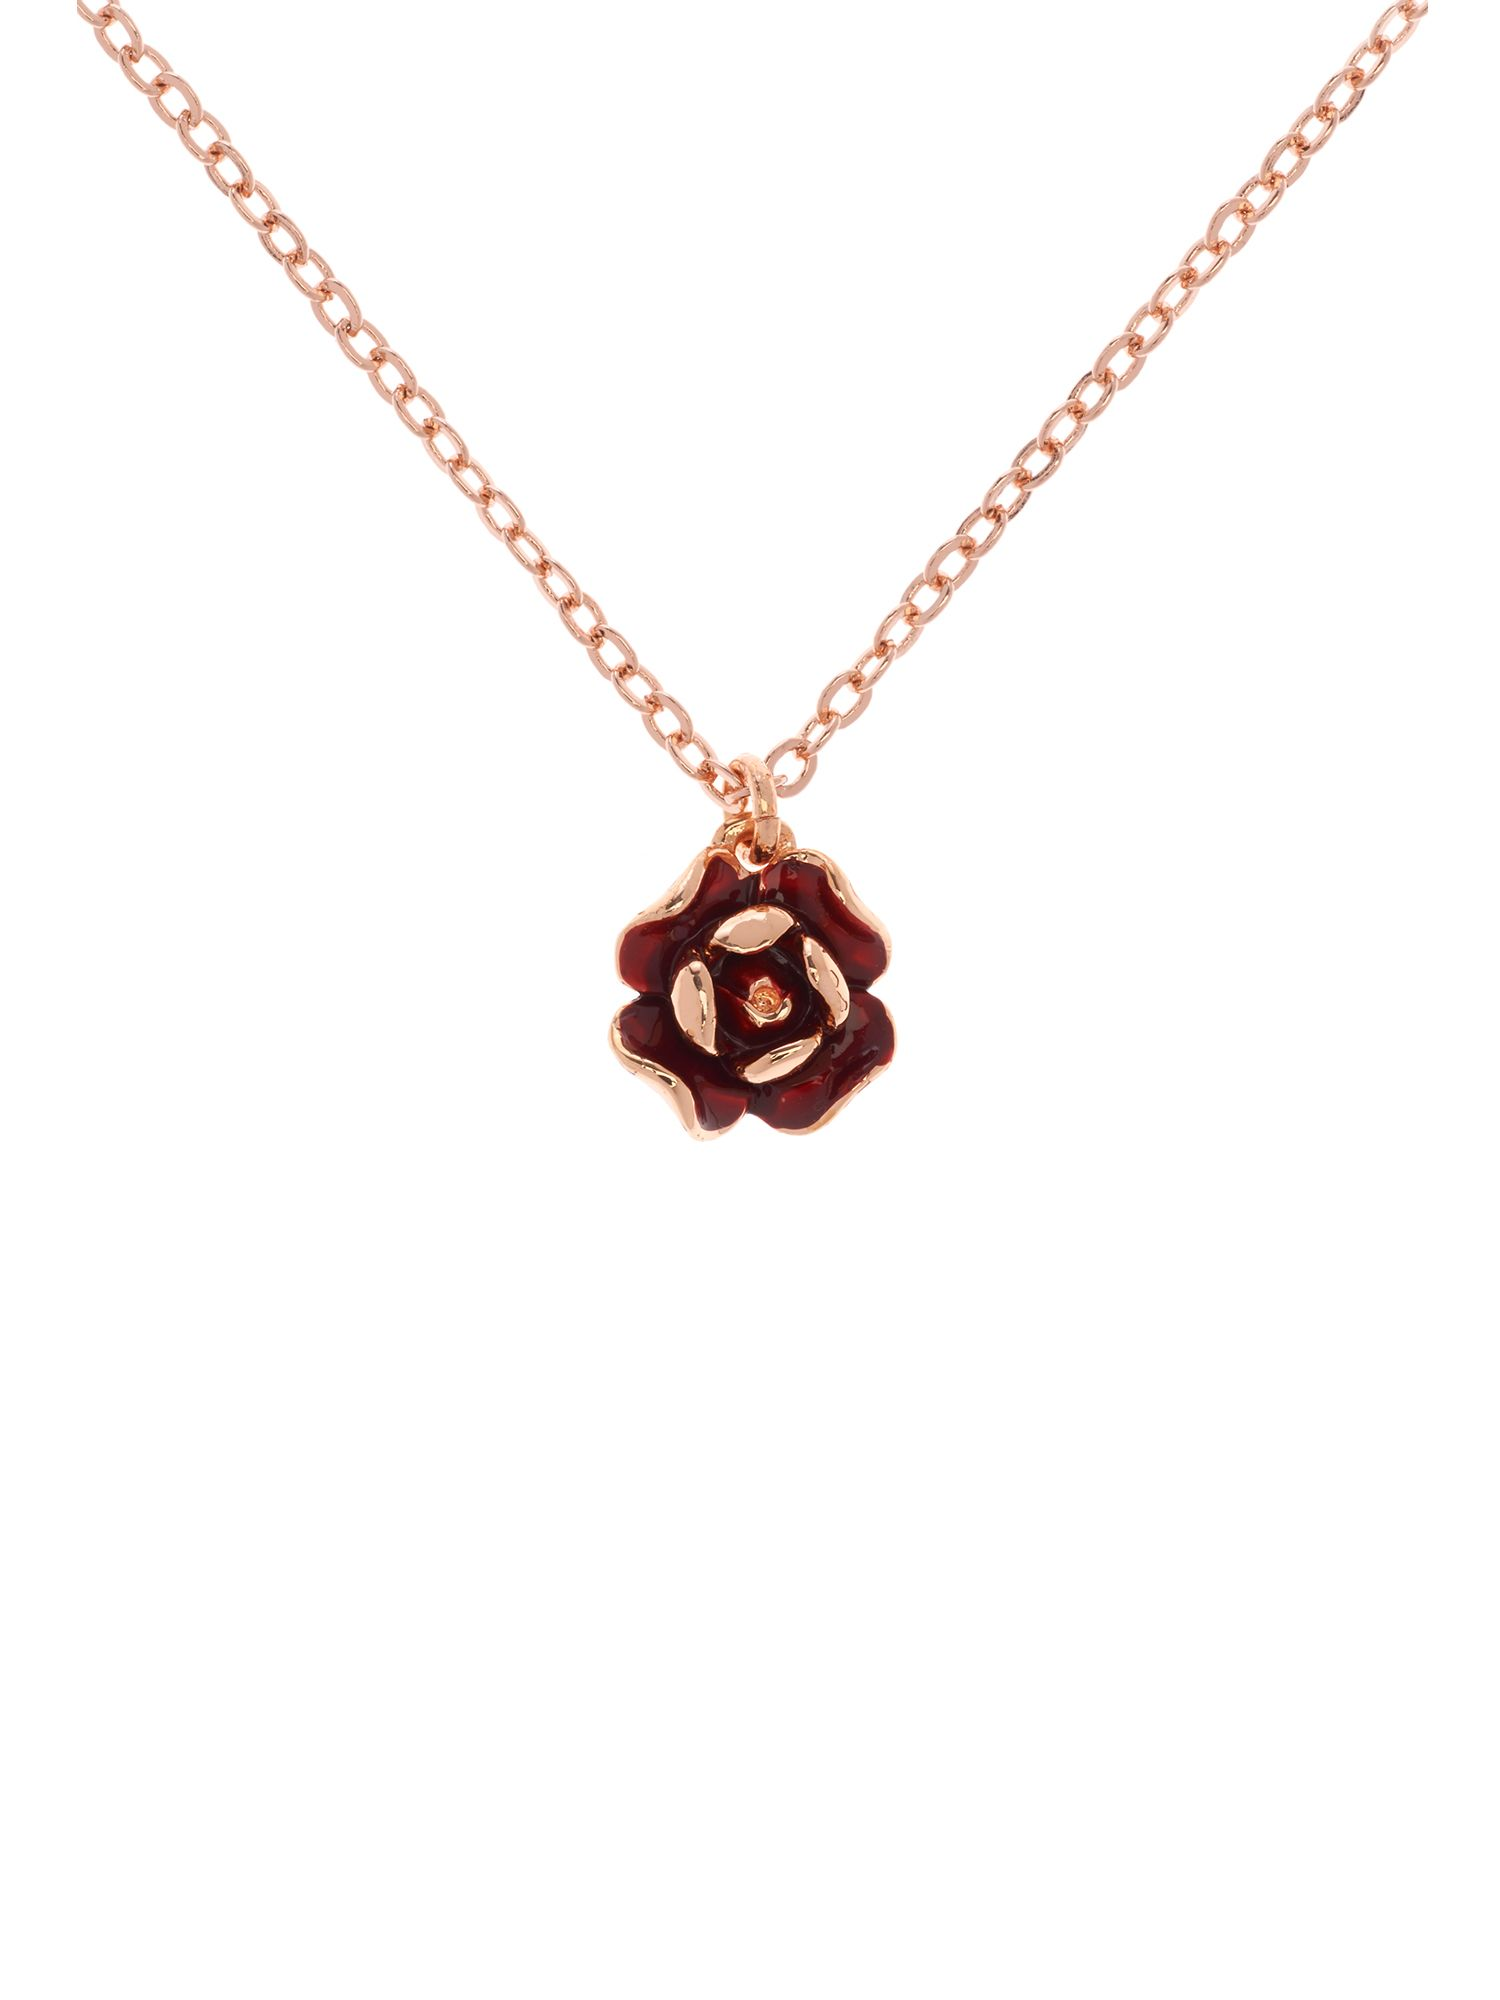 Ted Baker Elliana red enamel rose pendant, N/A.